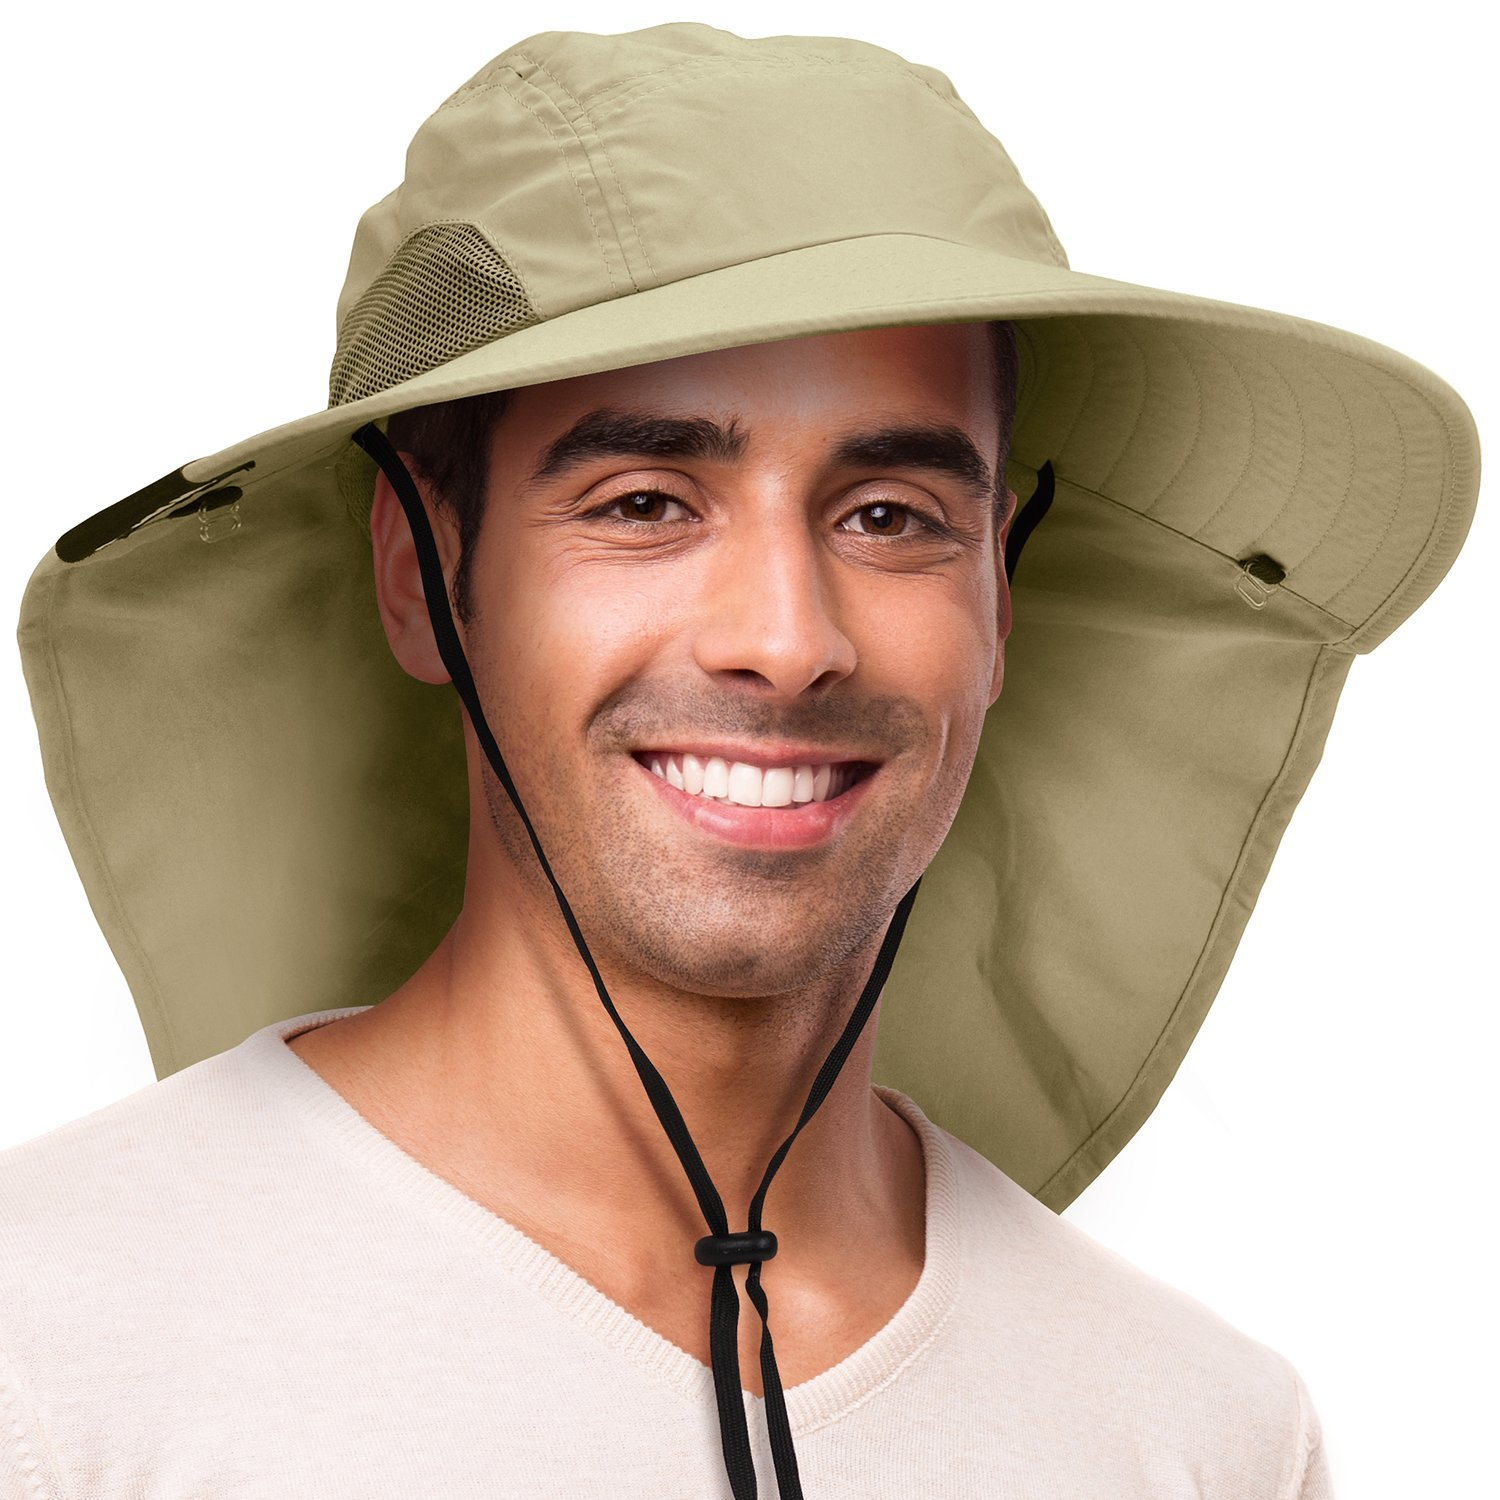 31728059218 Solaris Outdoor Fishing Hat with Ear Neck Flap Cover Wide Brim Sun  Protection Safari Cap for